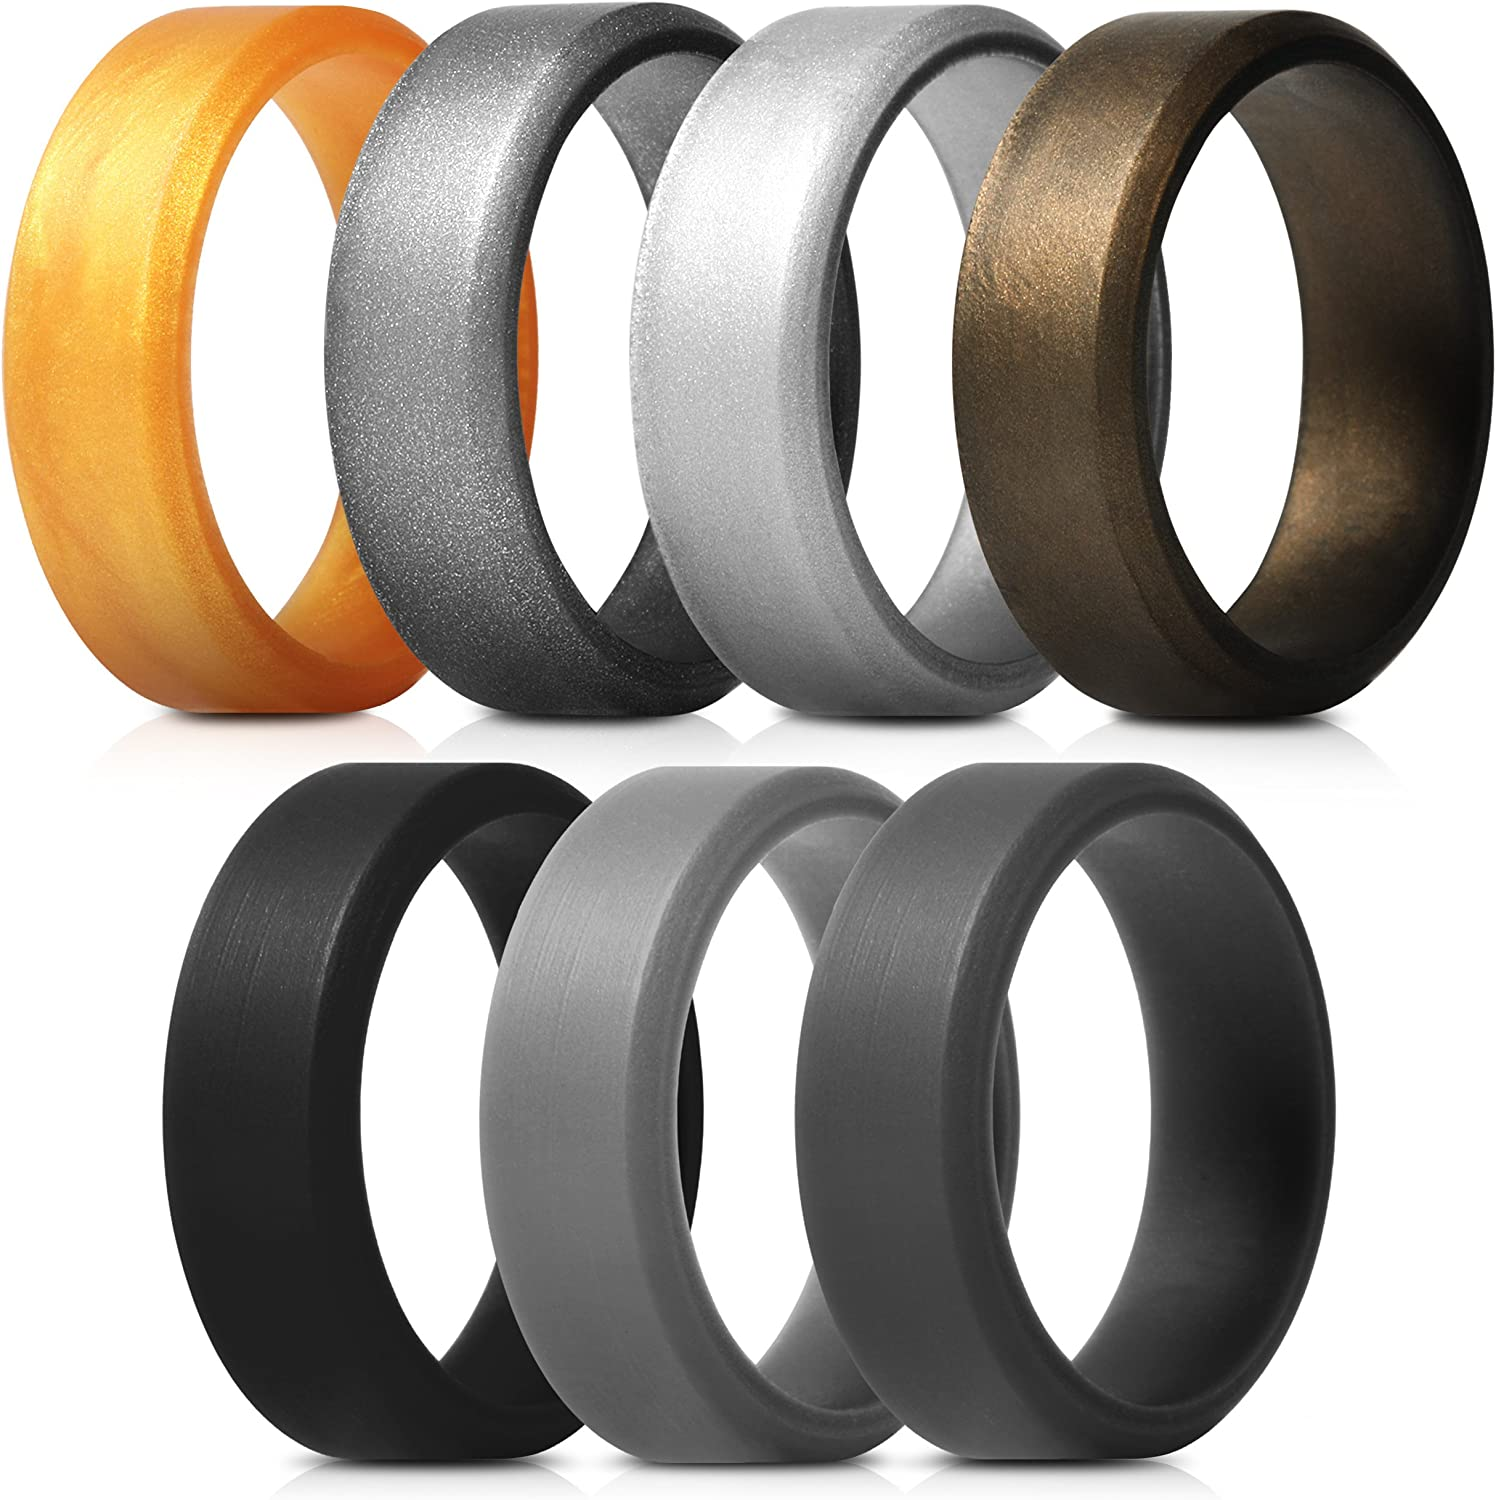 Saco Band Men's Silicone Rings Angled store Polished with Desig Max 63% OFF Aspect